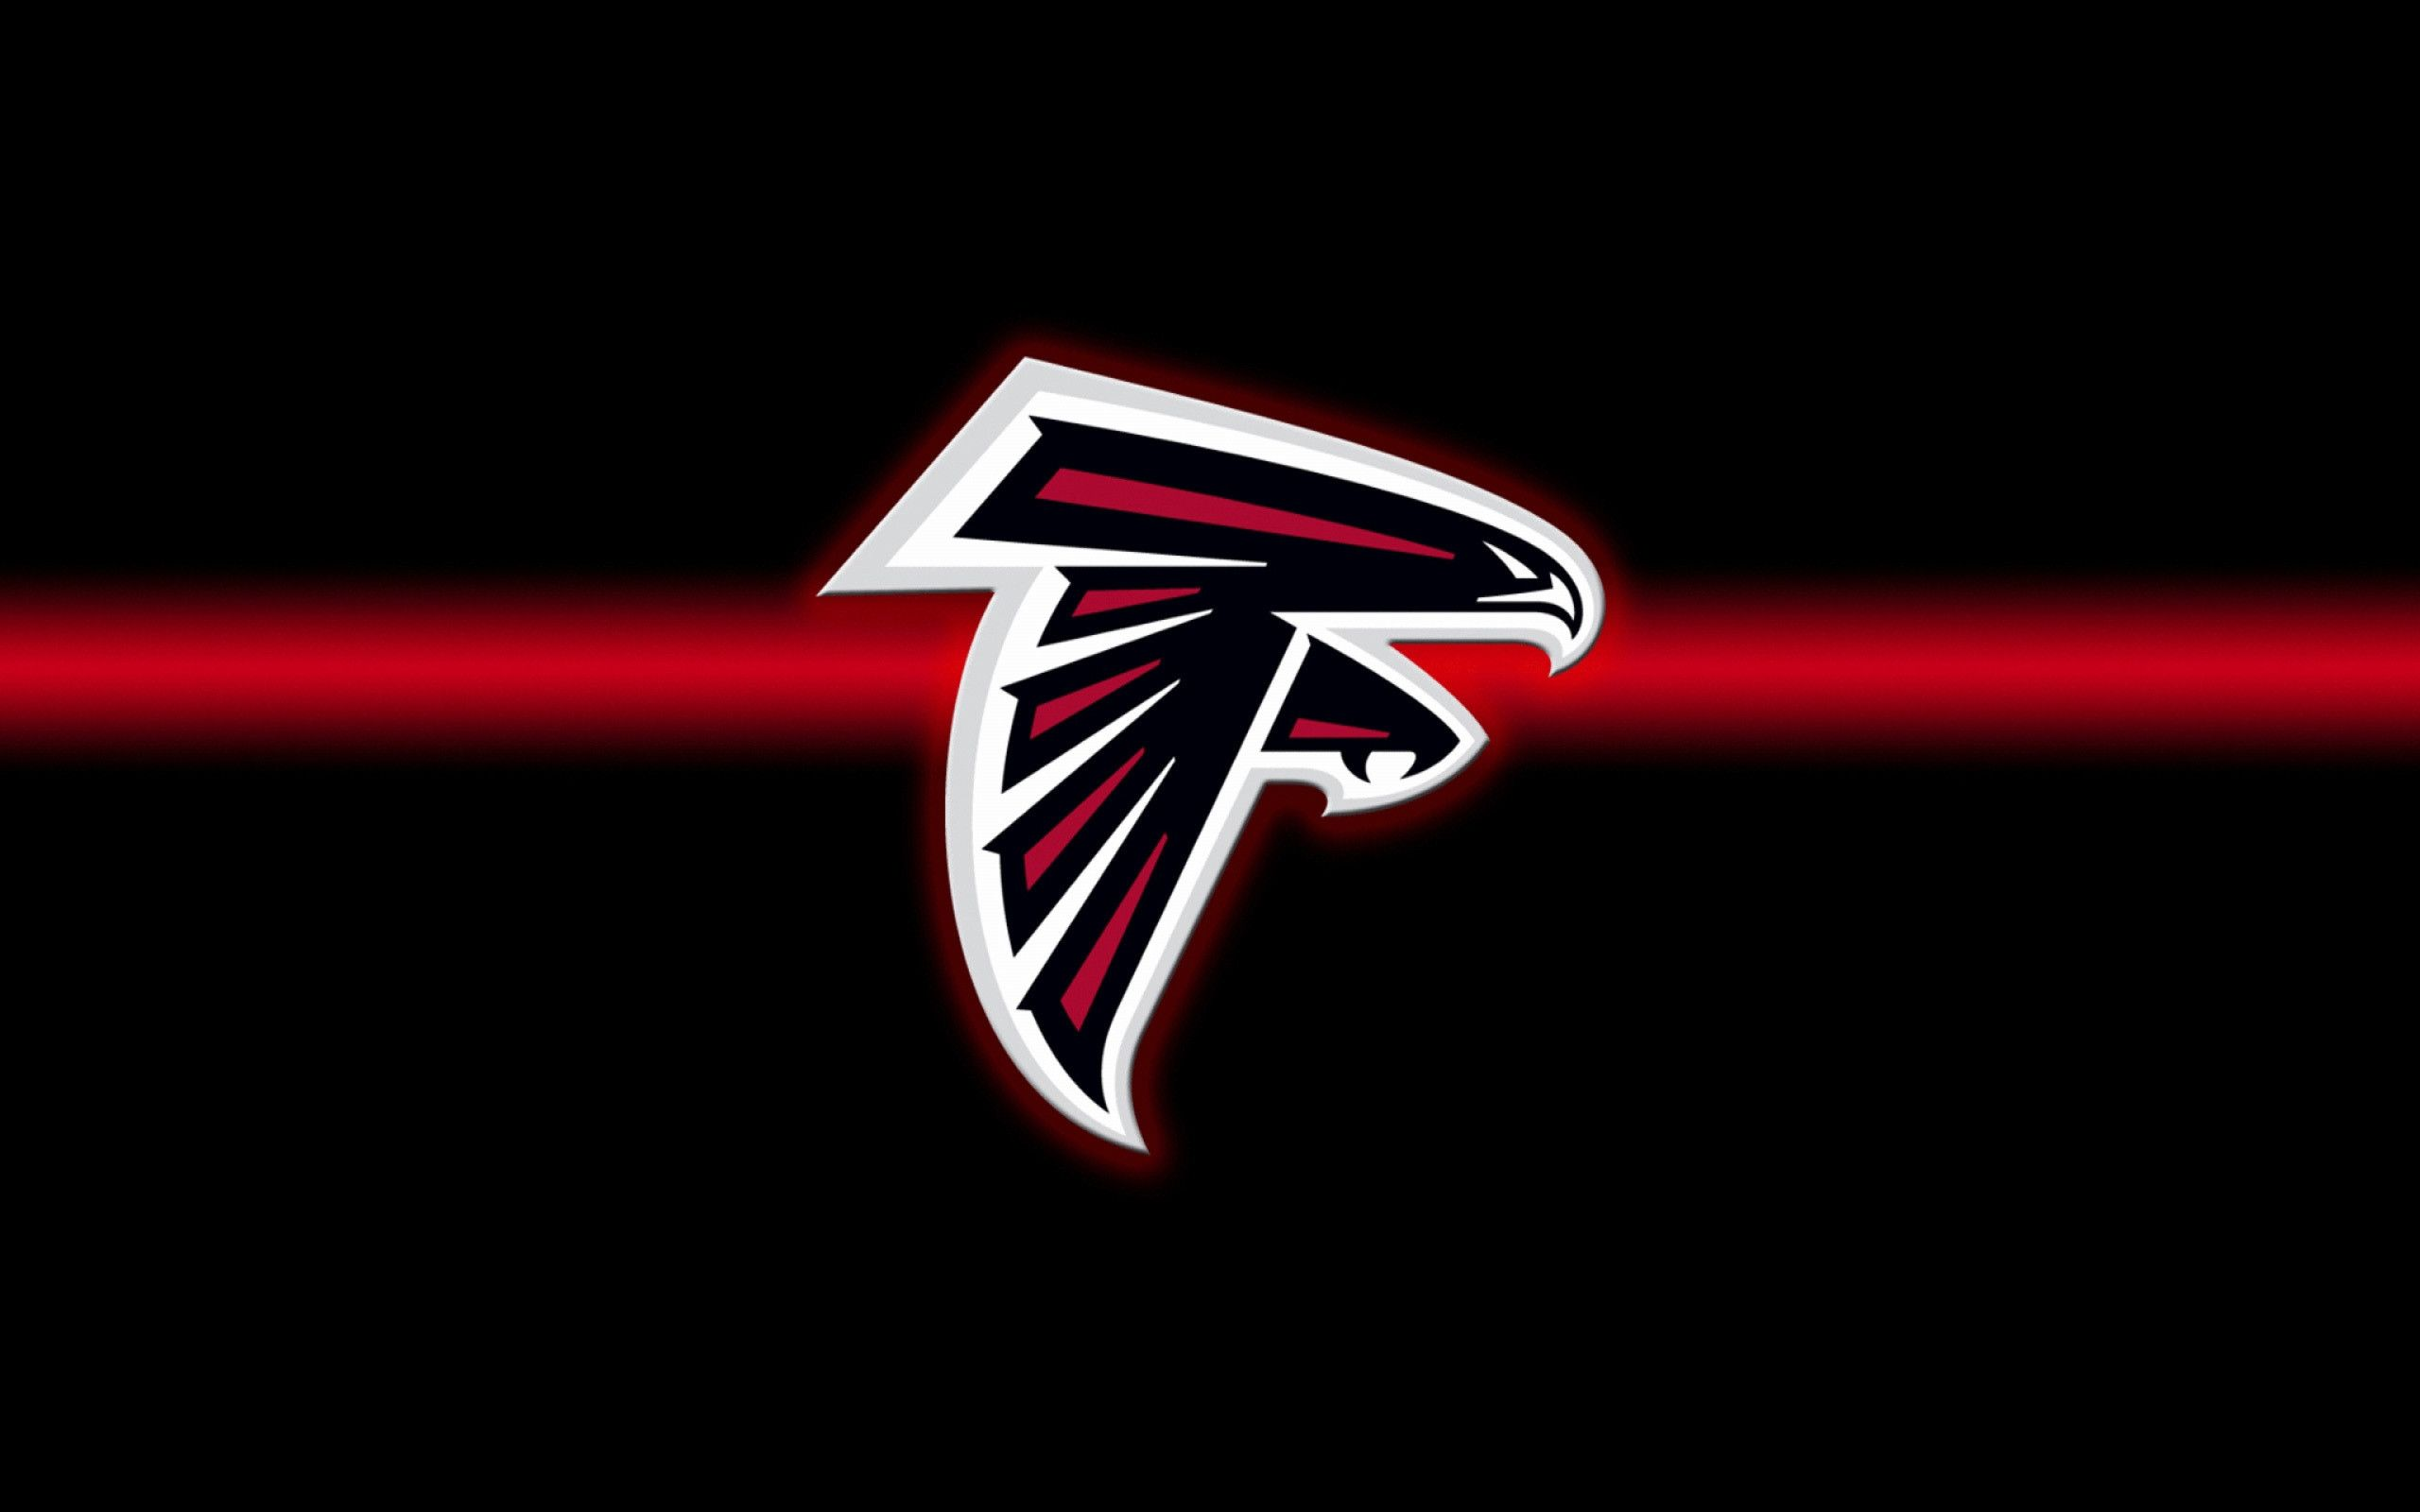 Falcons Iphone Wallpaper: Atlanta Desktop Wallpaper